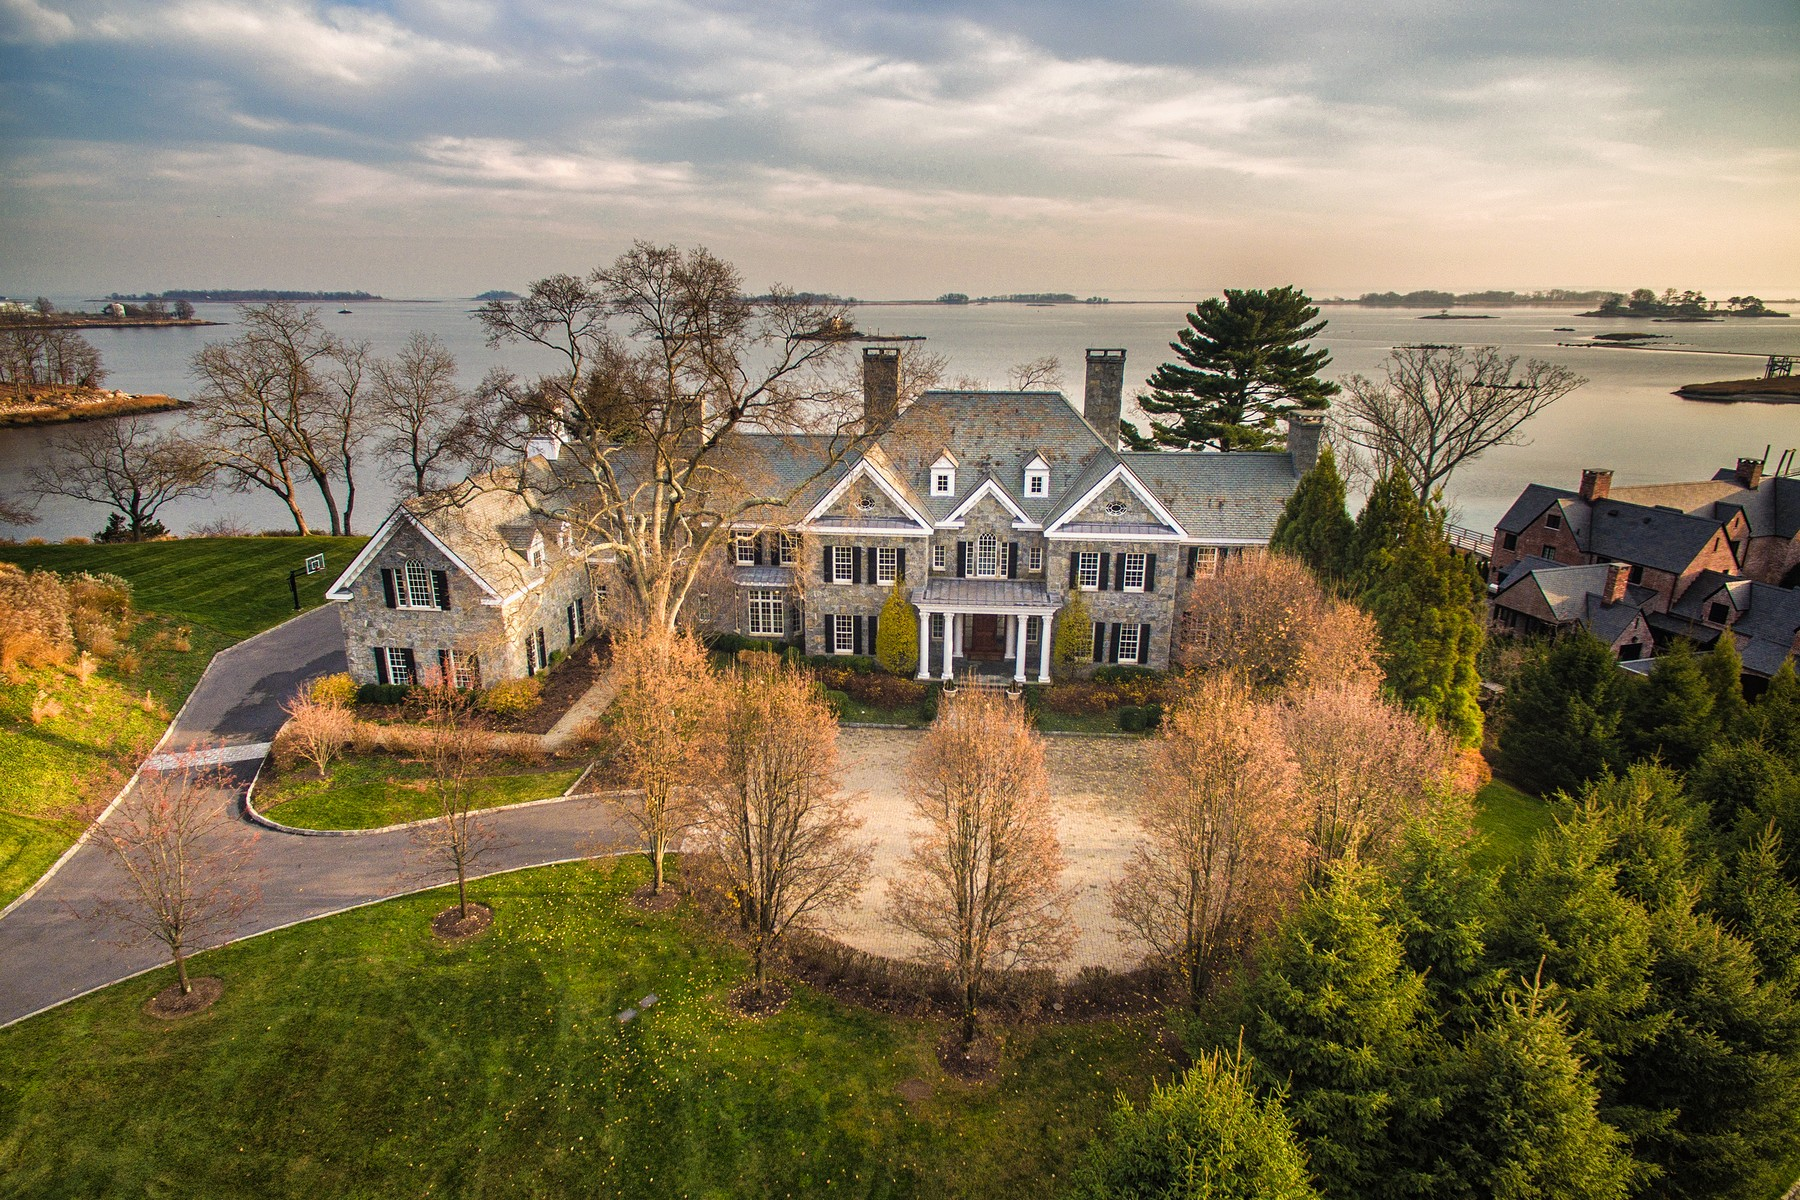 Property For Sale at Elegant Waterfront Georgian Colonial